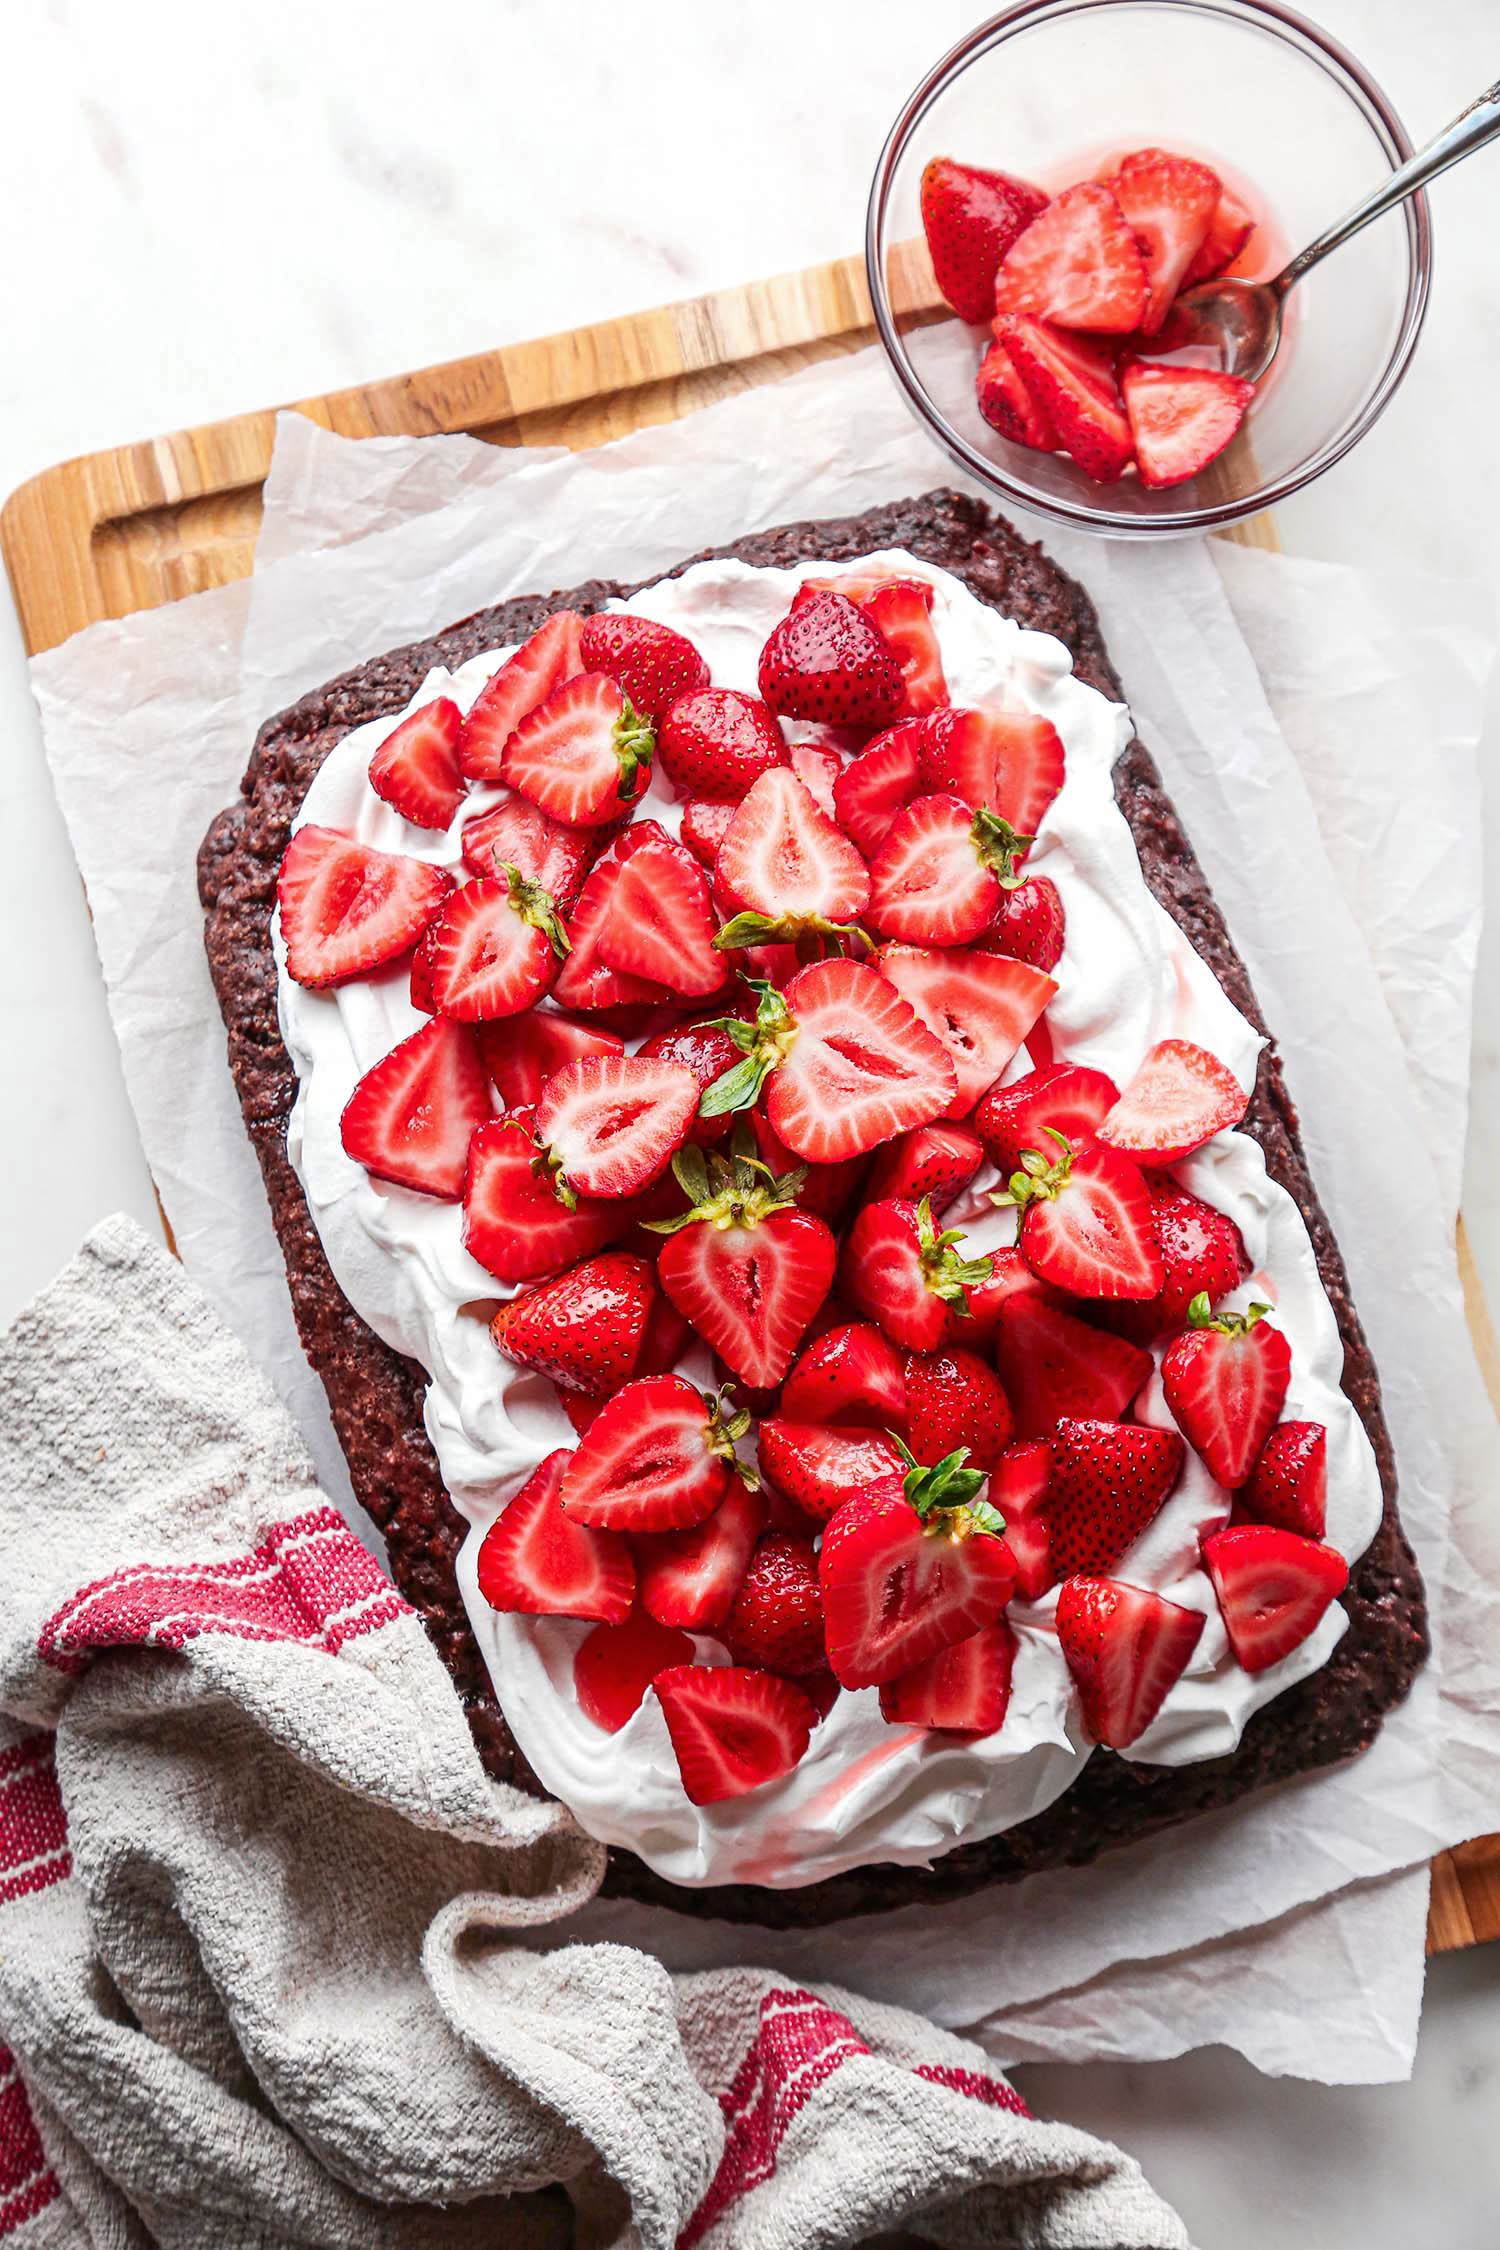 Chocolate Strawberry Shortcake Sheet Cake topped with whipped cream and fresh strawberries overhead